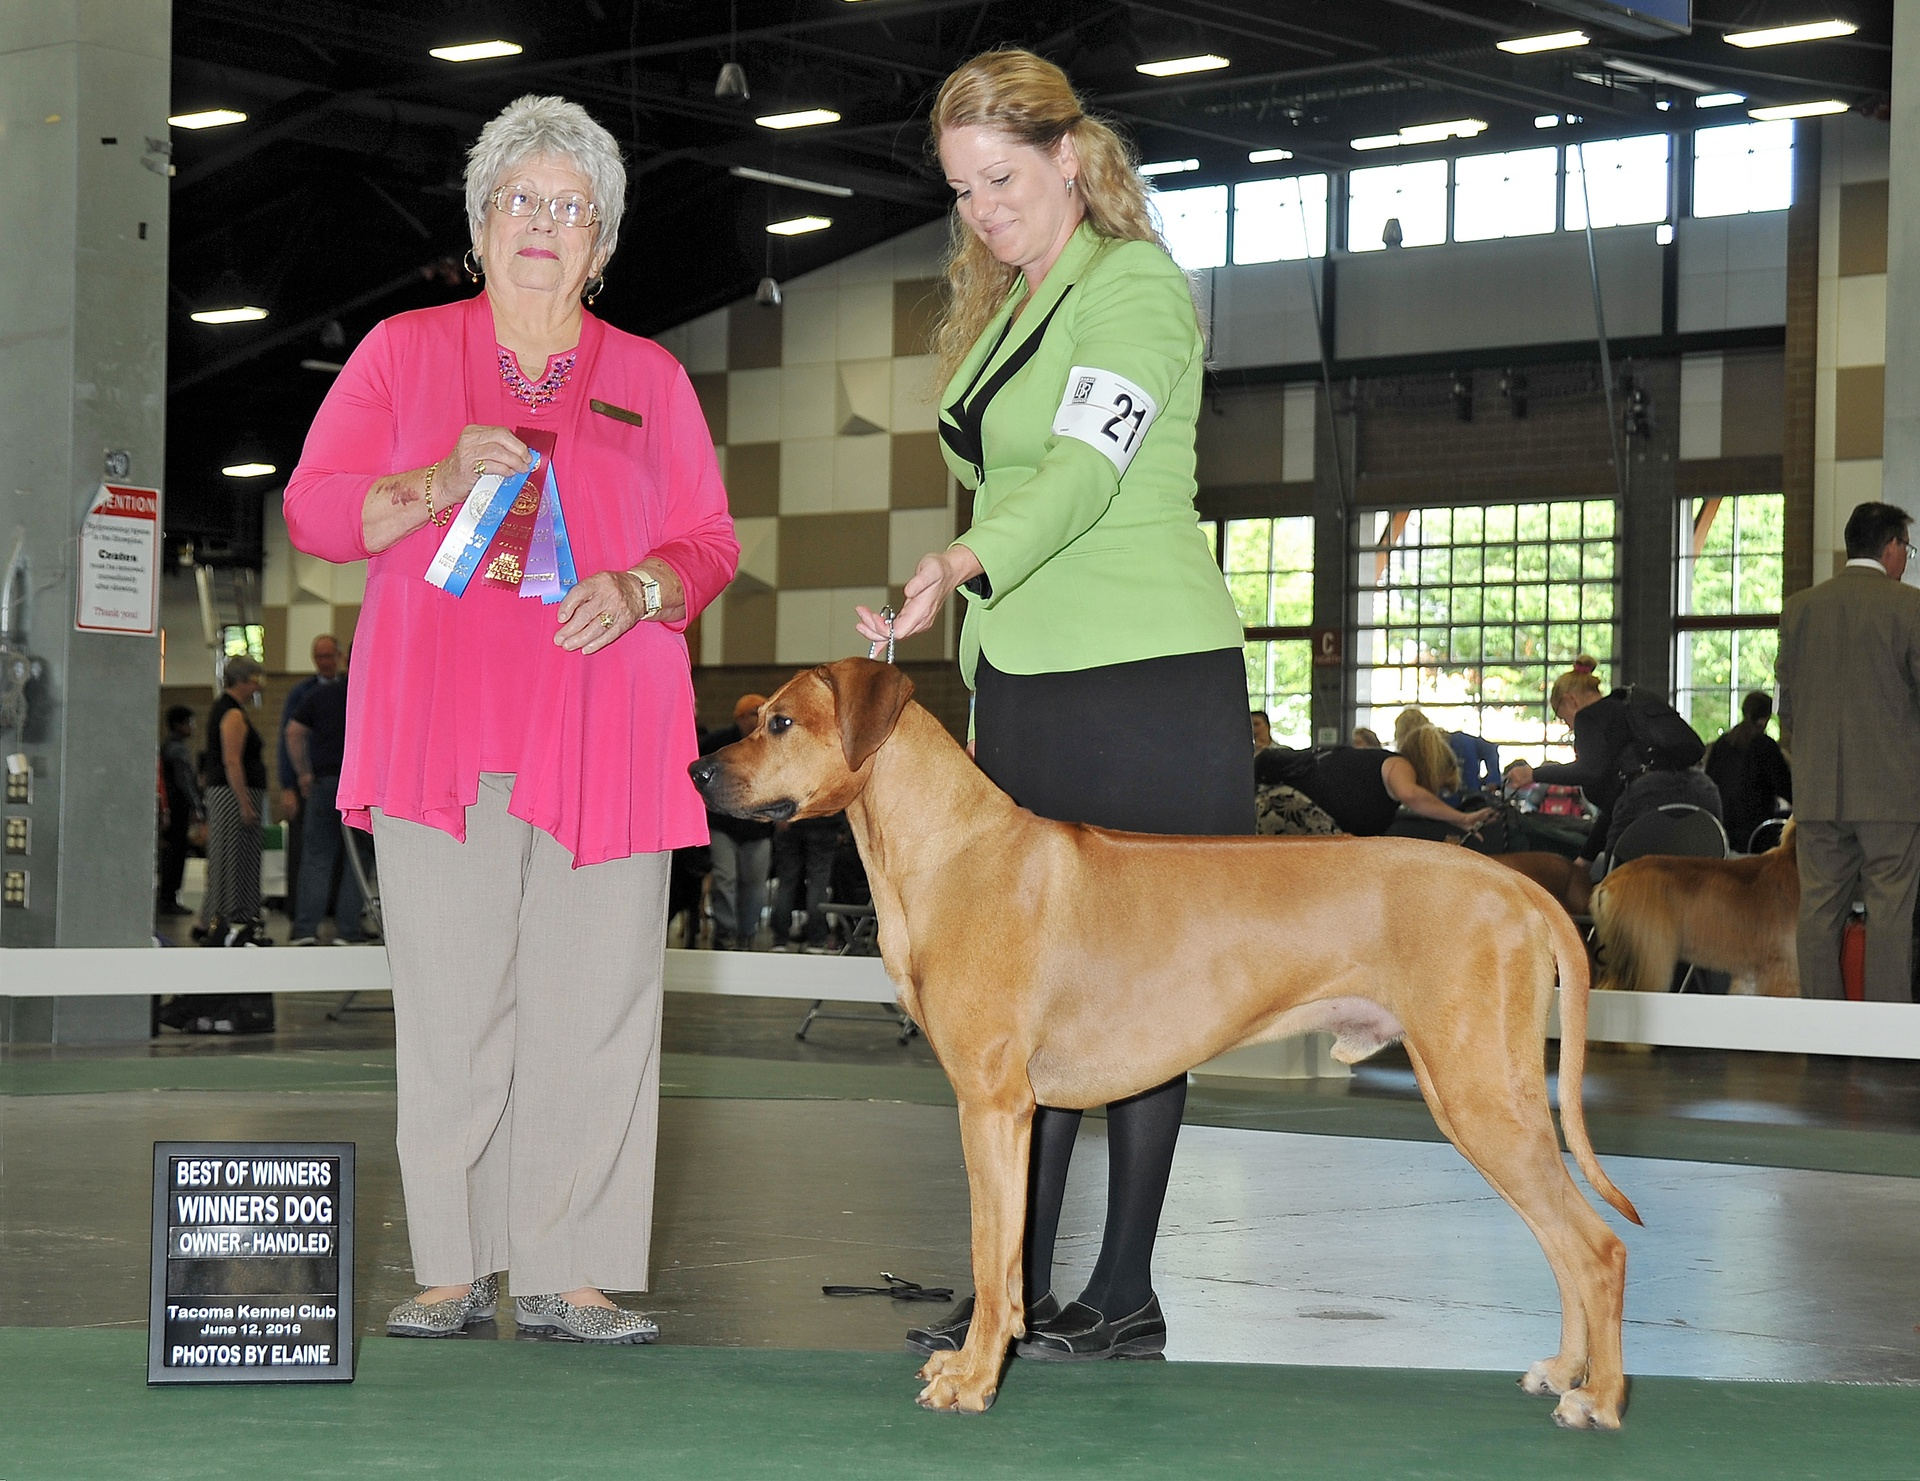 Finn- Best of Winners and also competed in the Owner-Handled competition where he received Best of Breed and a Hound Group 3.